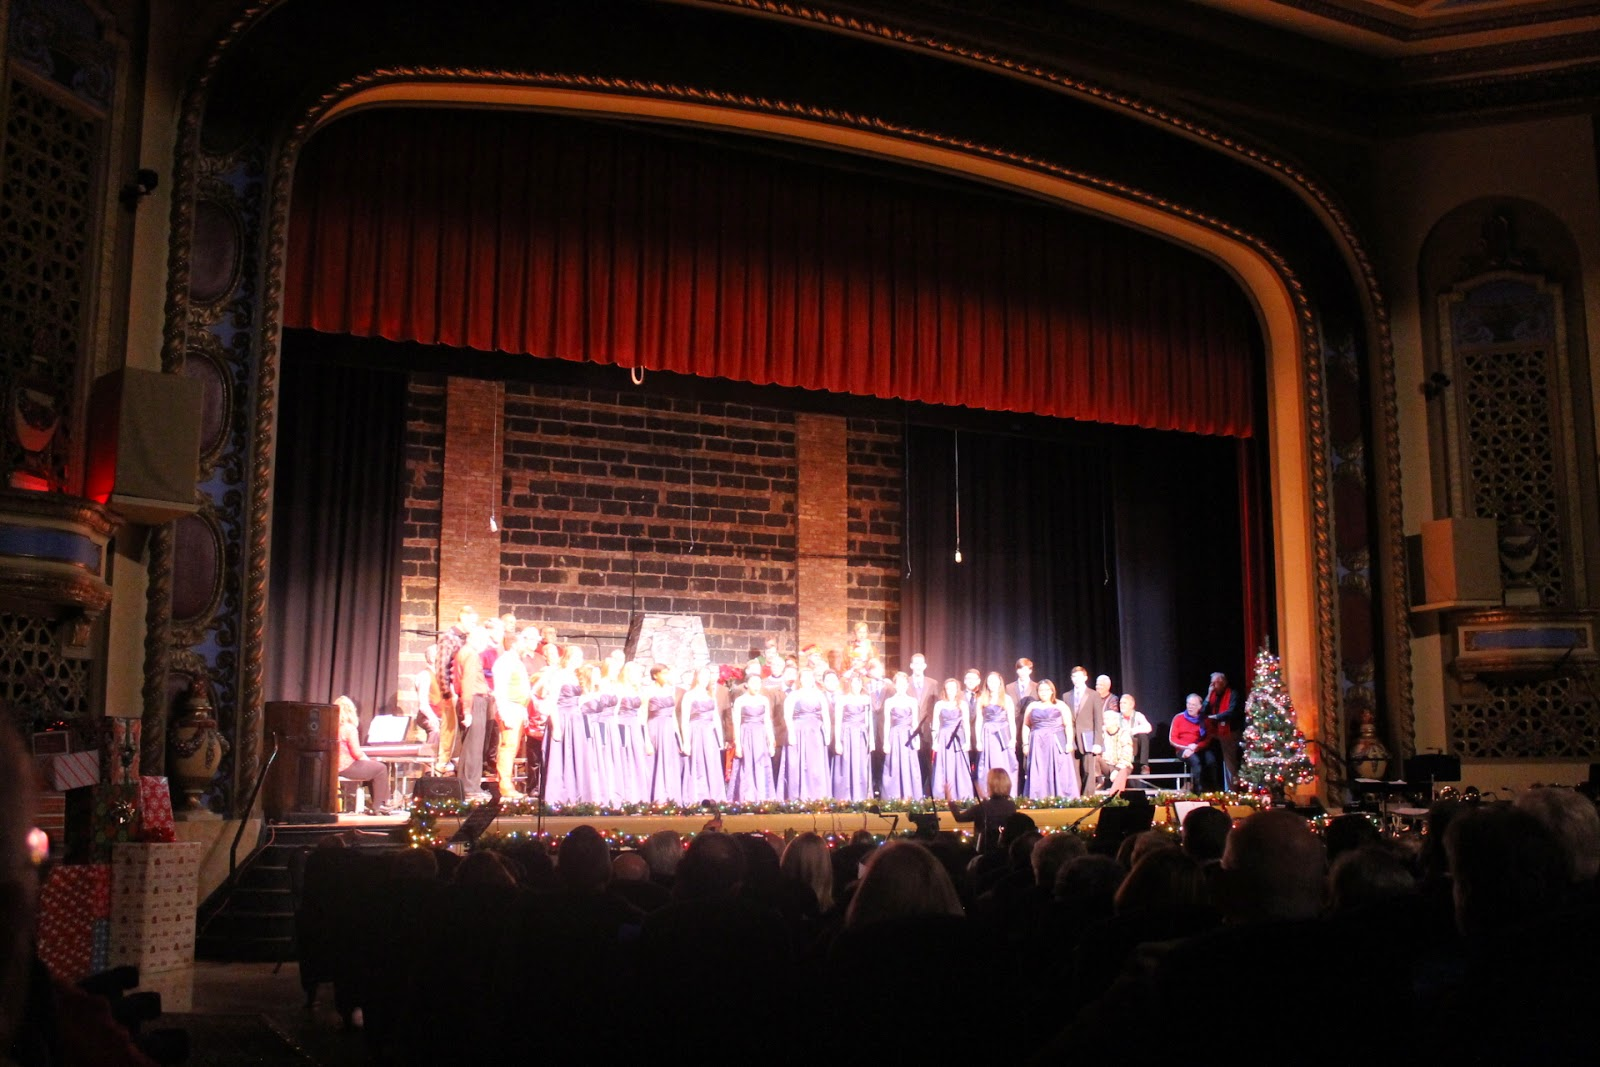 Tivoli Theater In Downers Grove South High Fine Arts Madrigal Singers In